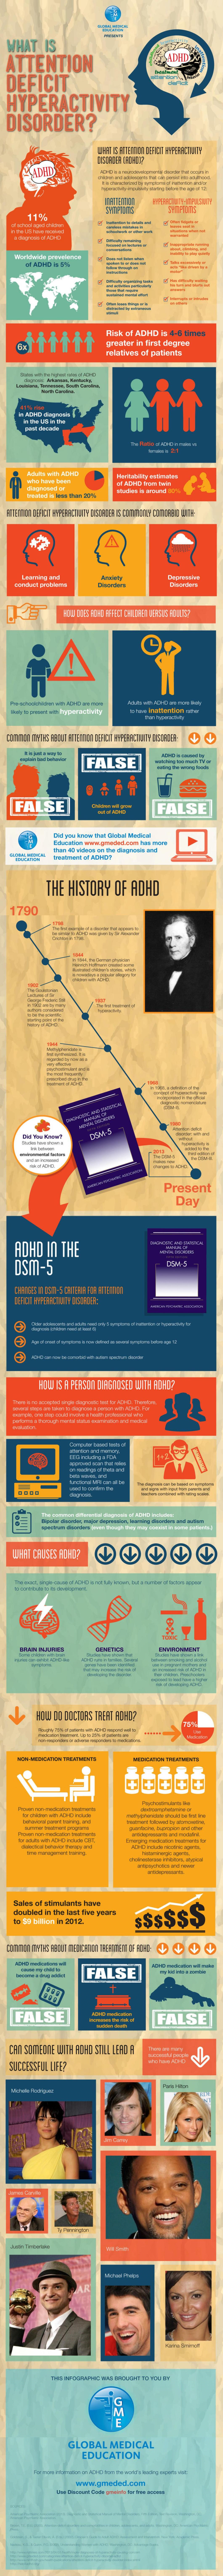 Facts and Misconceptions: The Whole Story of ADHD - Infographic